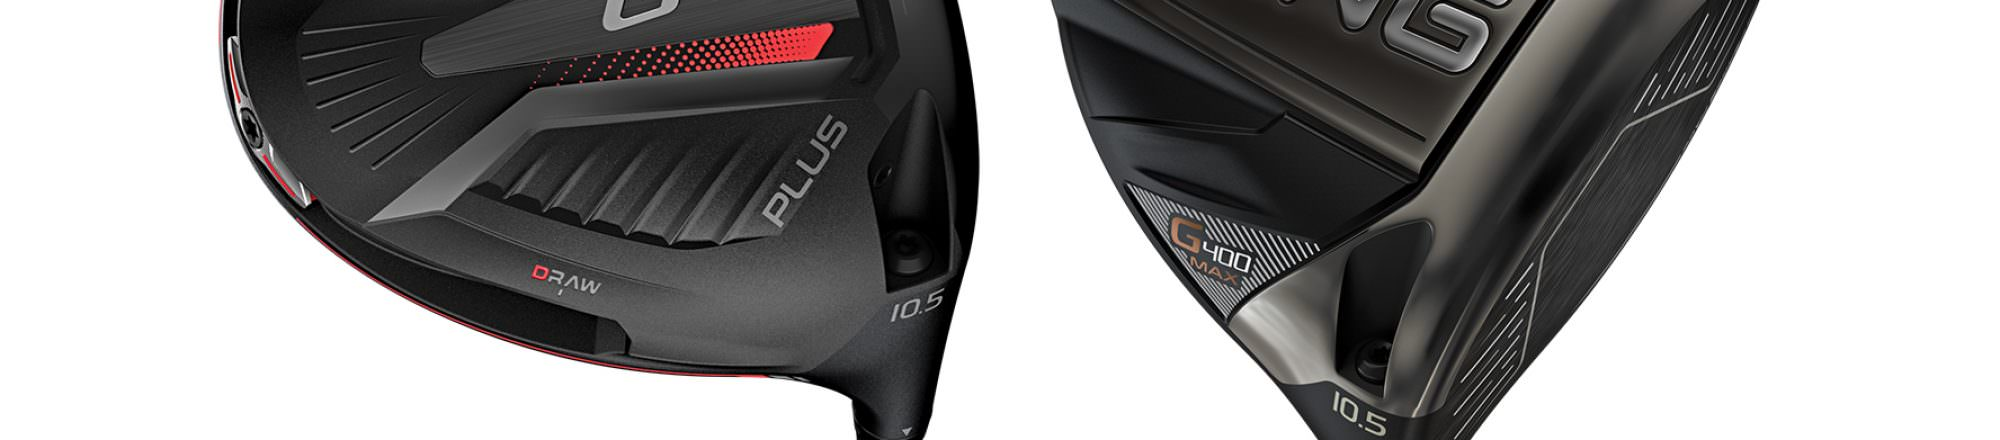 The Ping G410 driver is here – but how does it compare to the G400 Max?